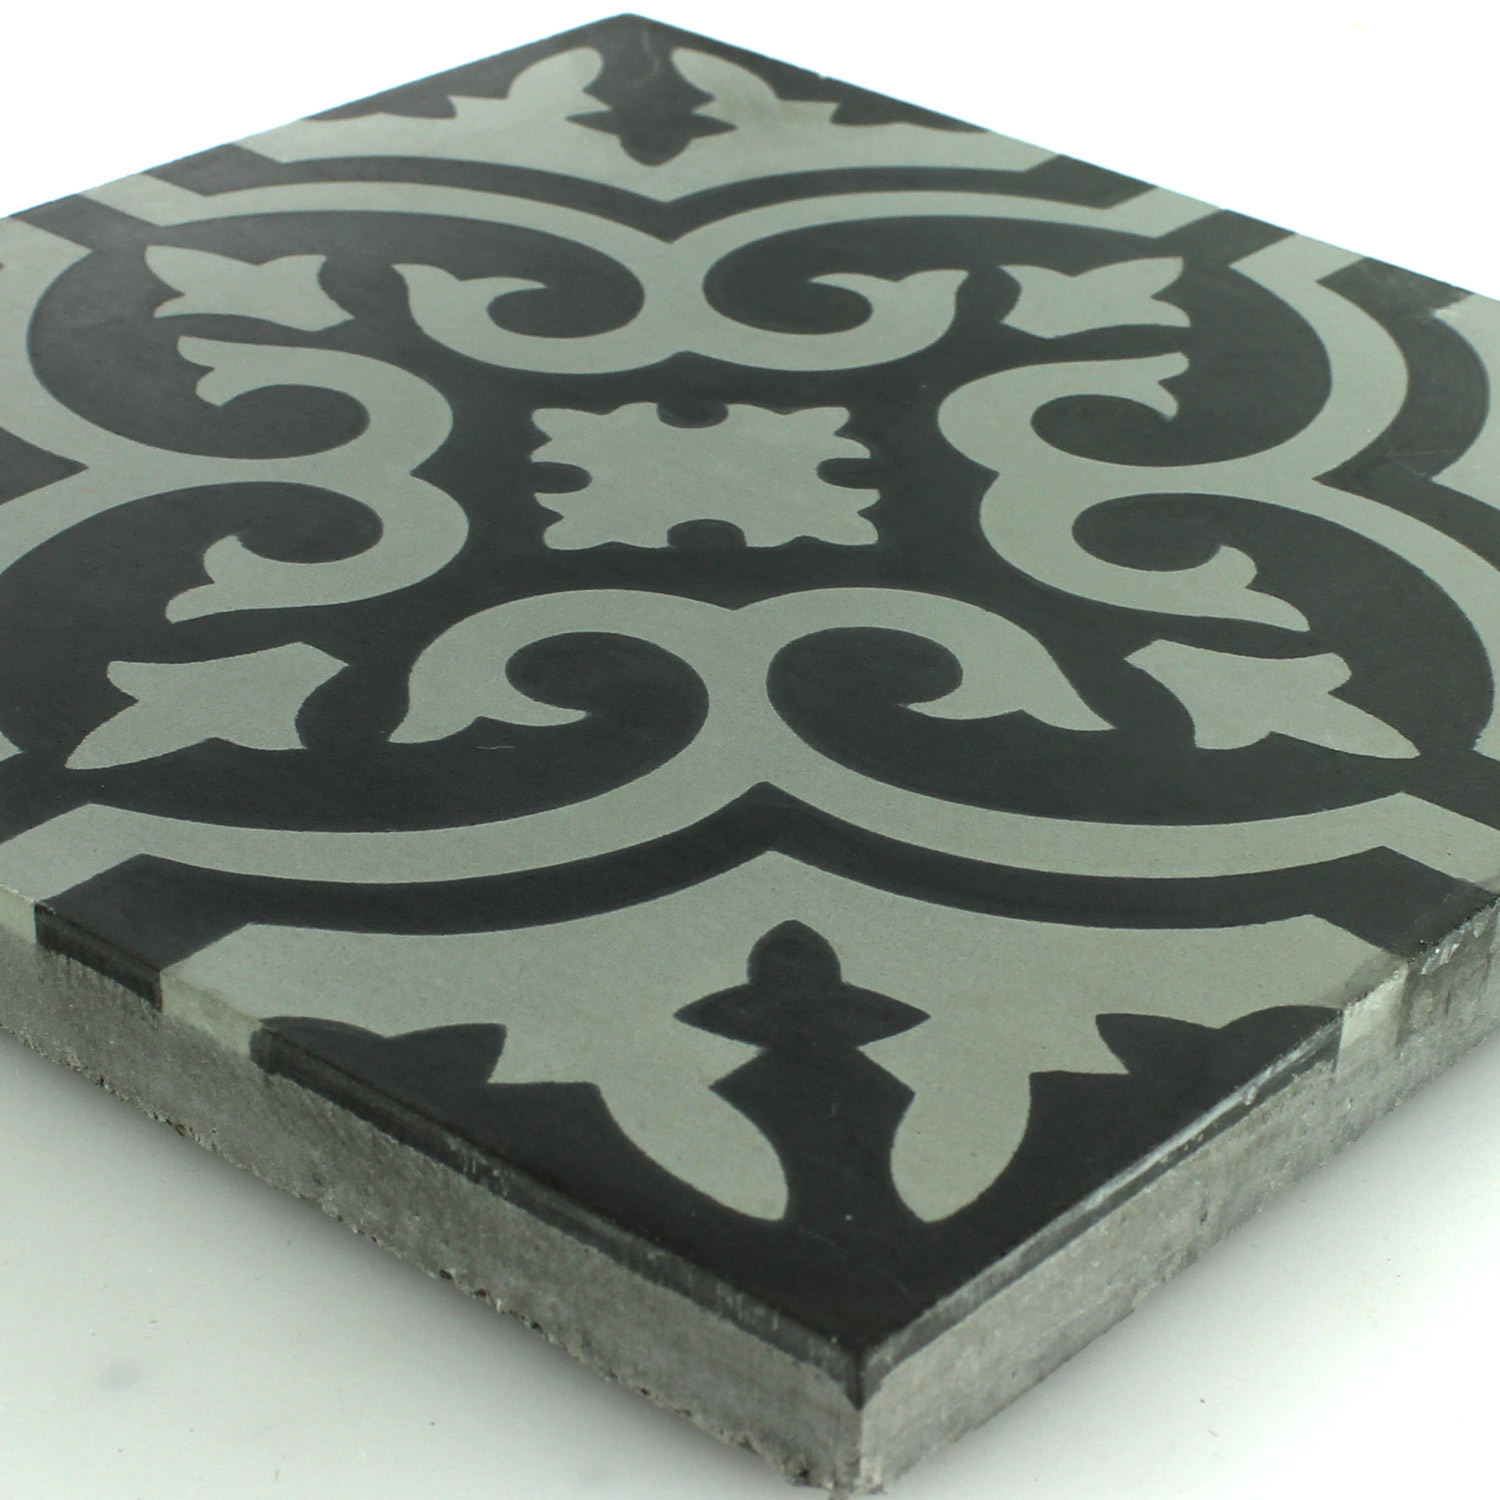 Cement Antique Tiles 20x20cm Ornament Black White Pl78196